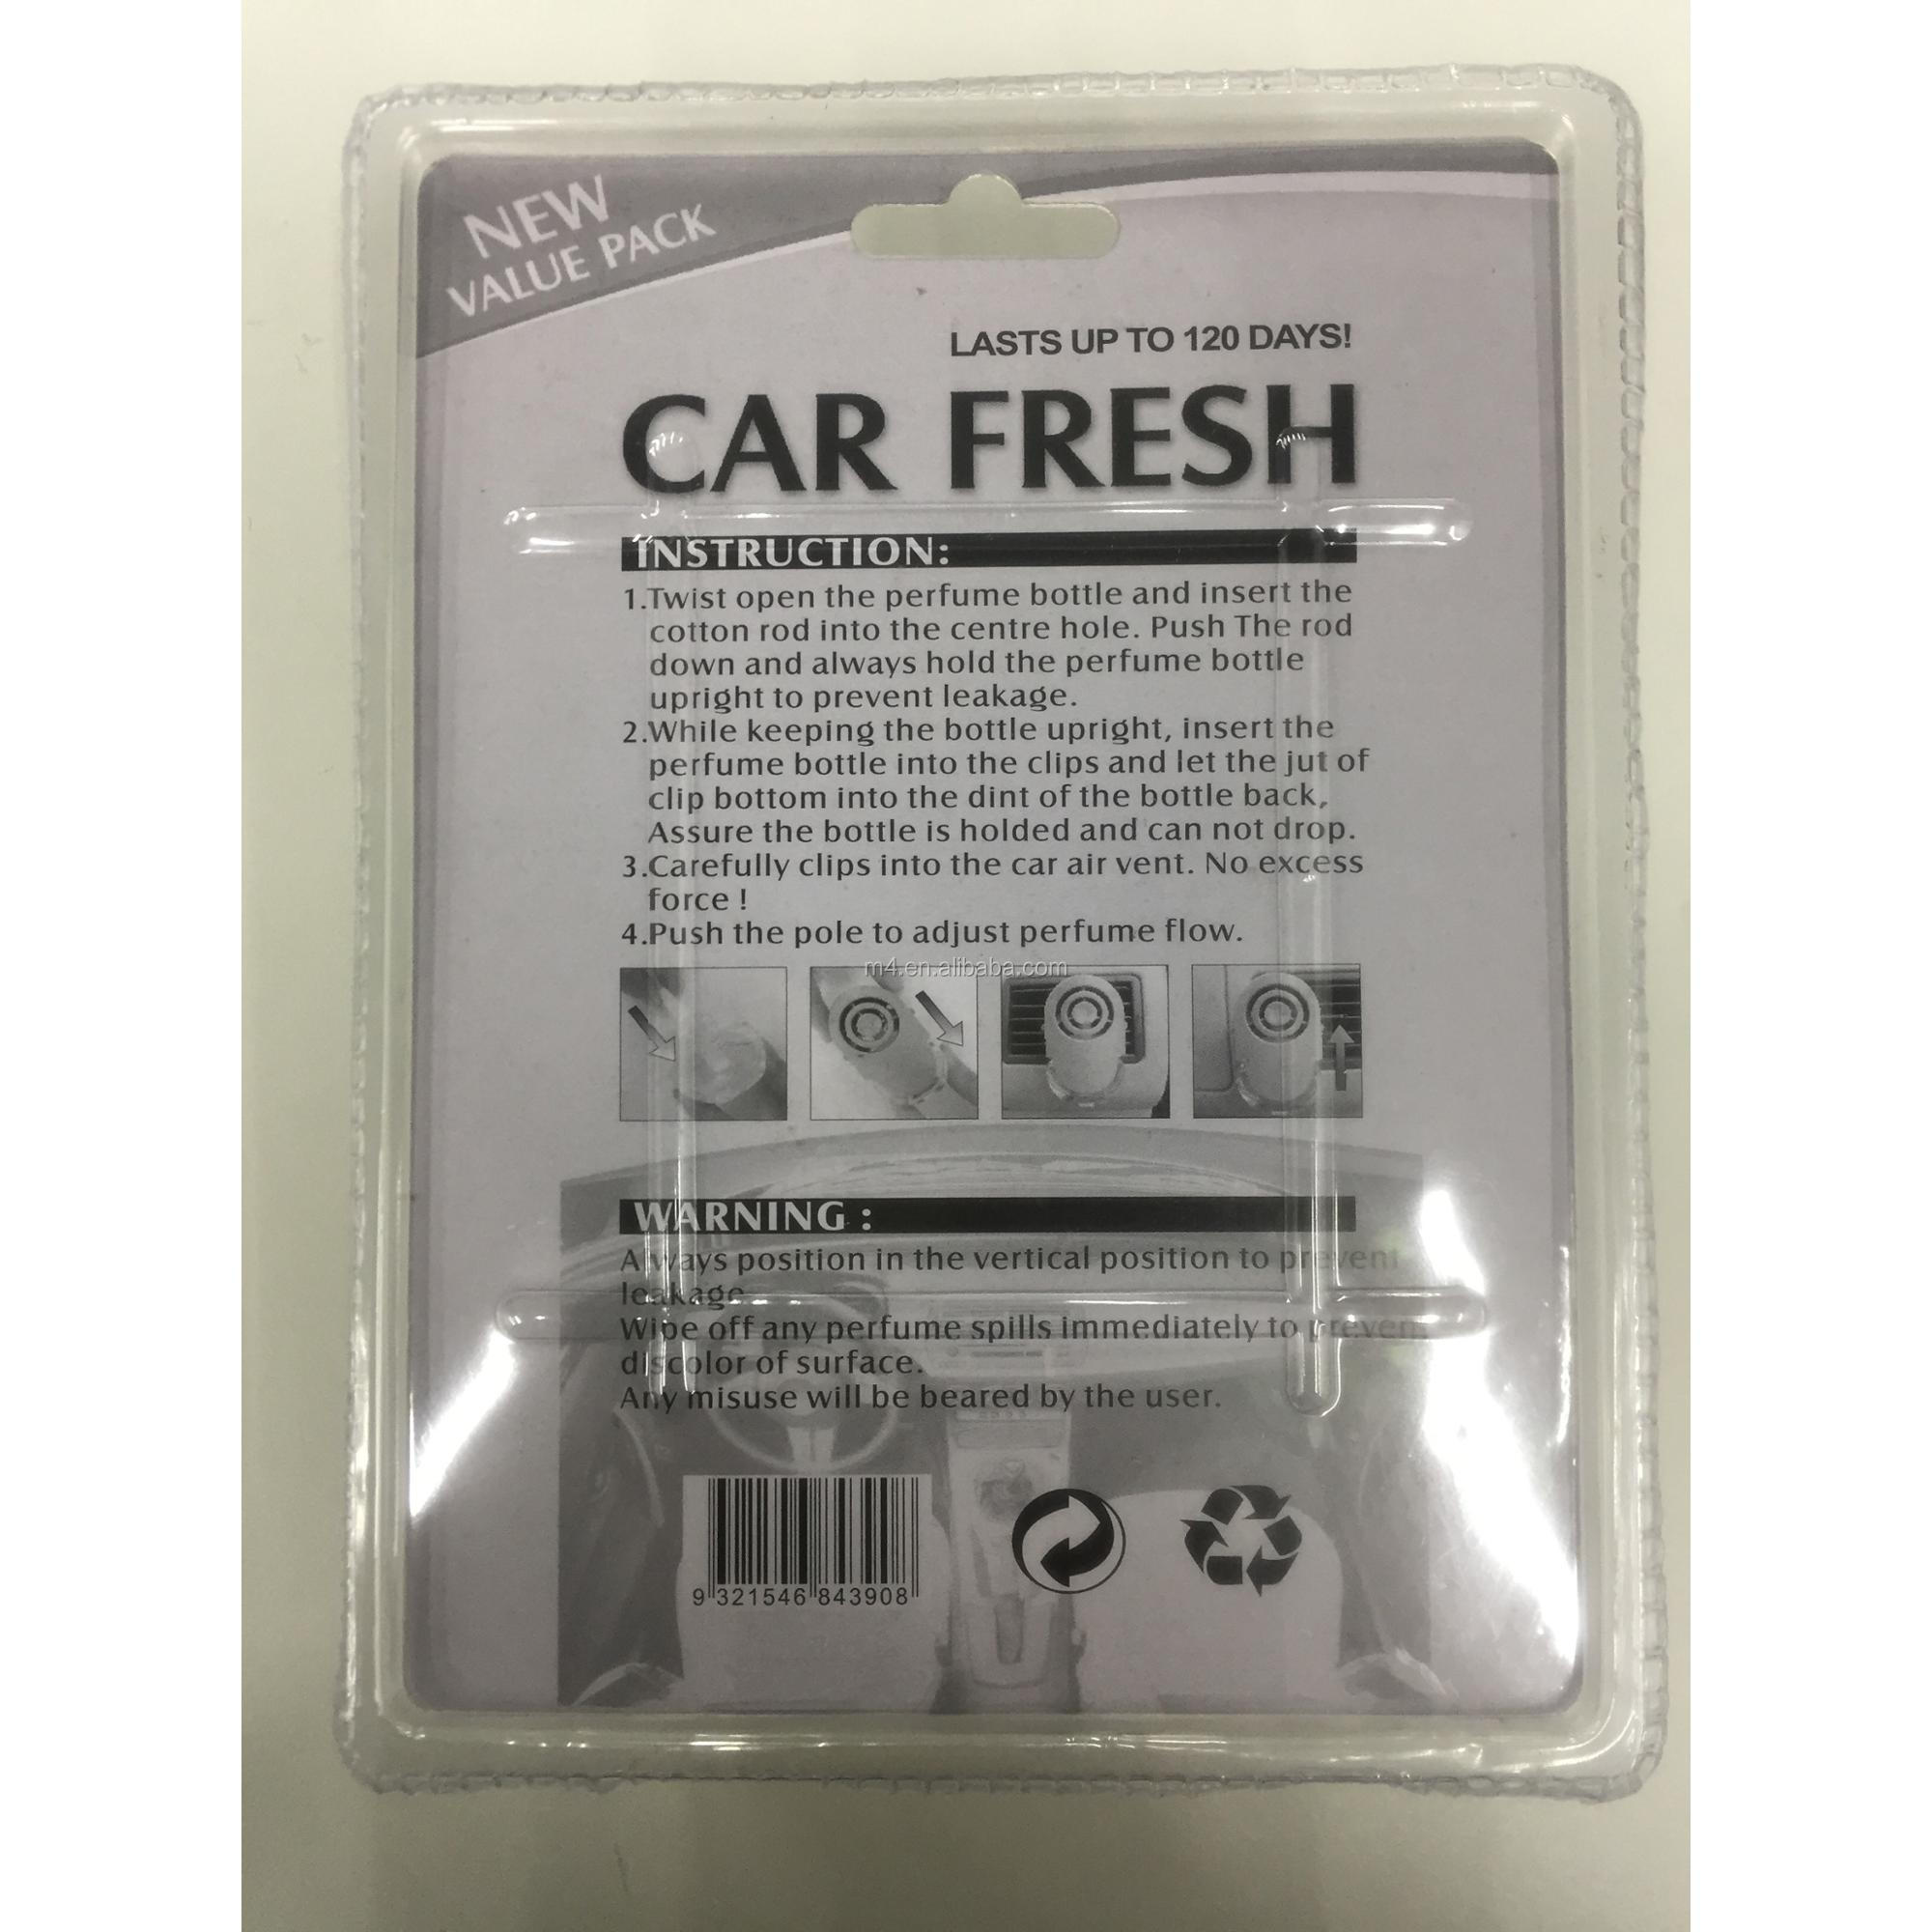 Vent car air freshener with substitute